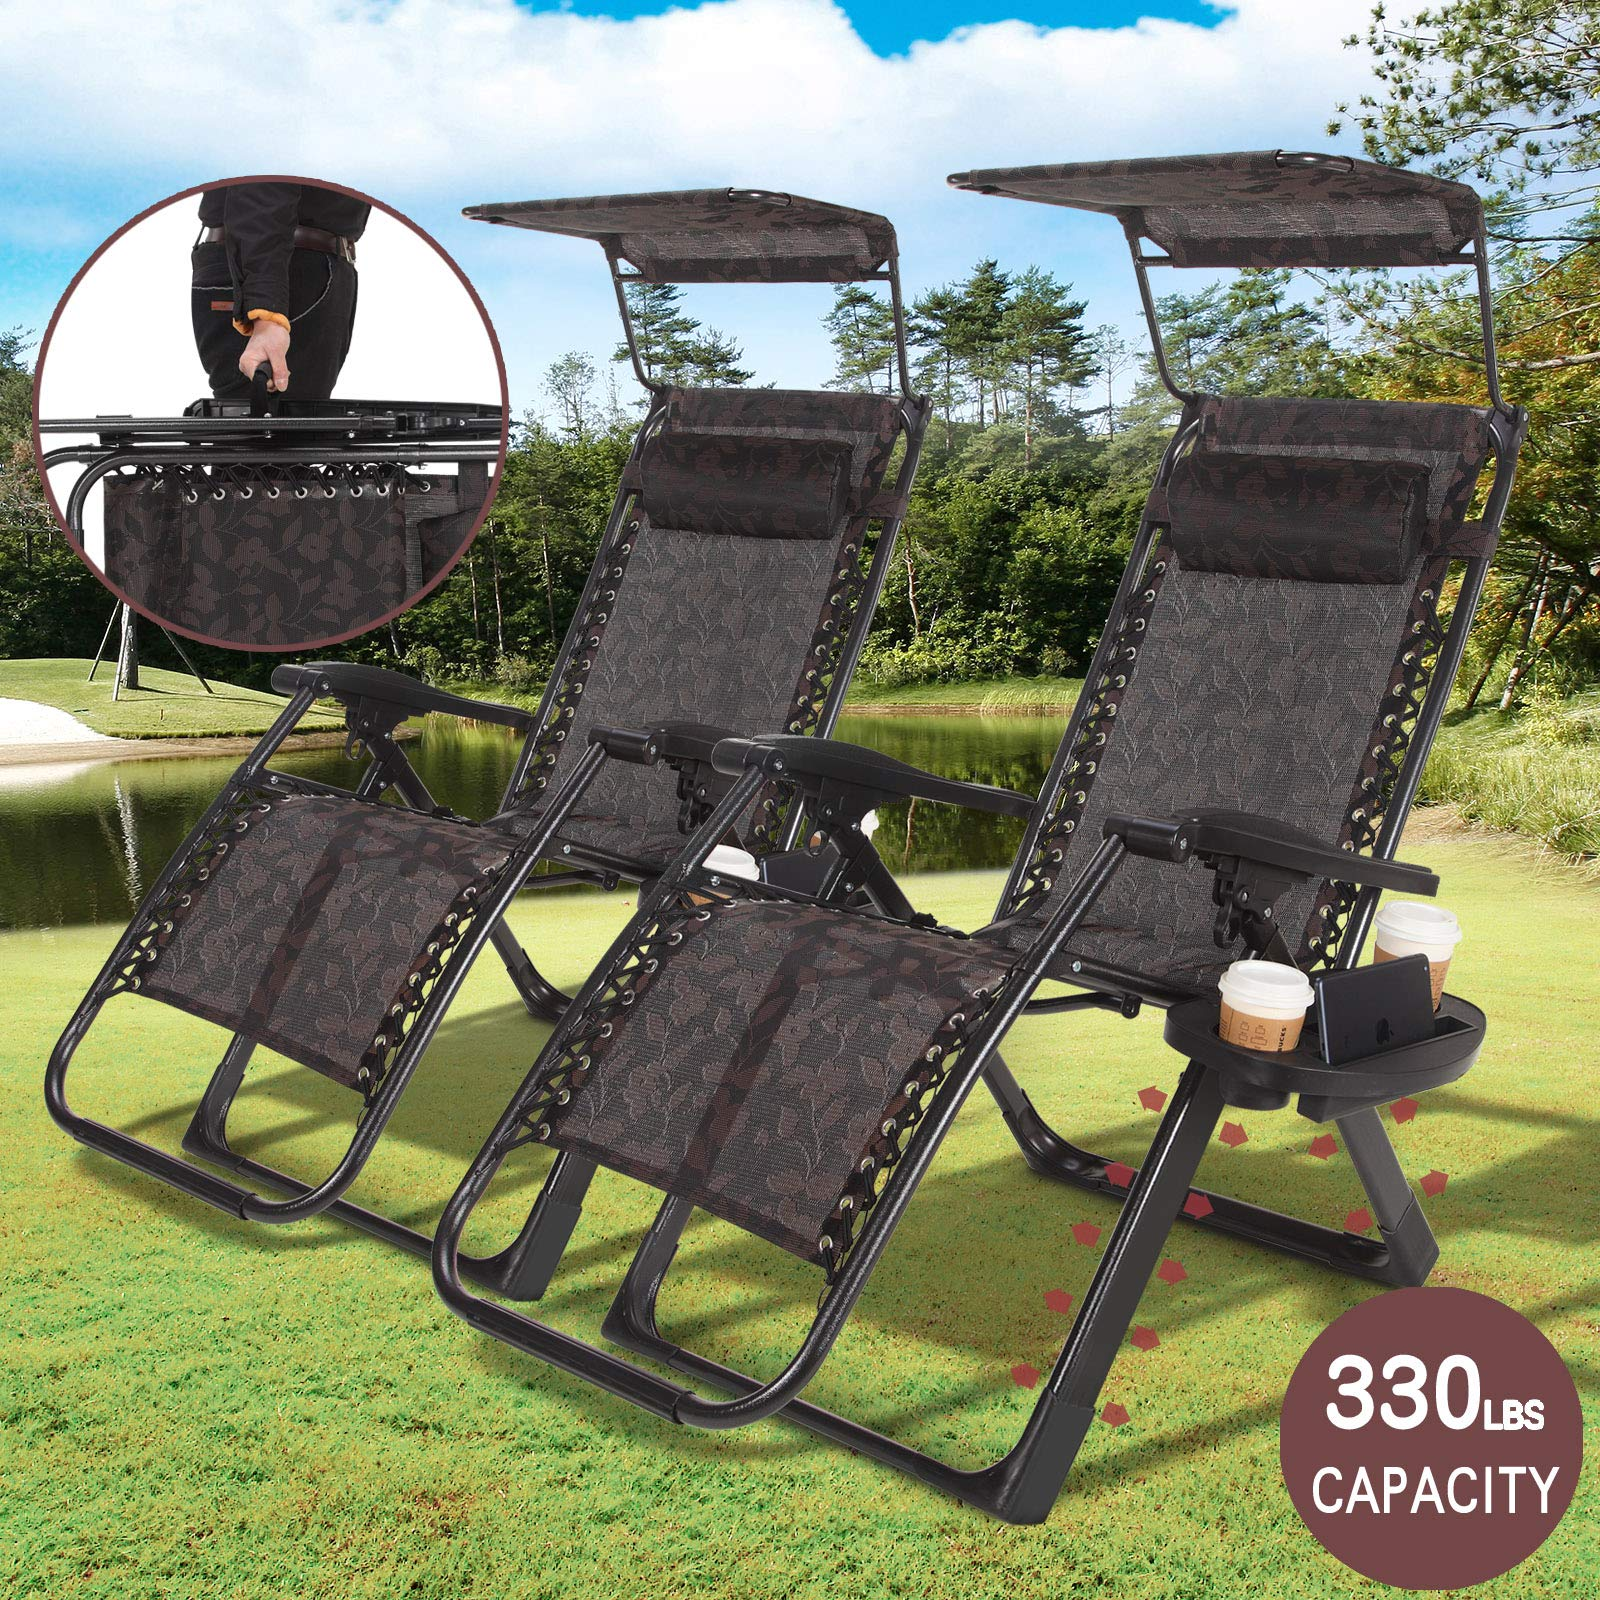 Artist Hand Zero Gravity Chair Set of 2 Recliner Seats Black Flowered Durable Textilene Fabric Backrest Sunshade Canopy & Cup Holder Tray Folding Lounge Chair Easy to Carry with Handle